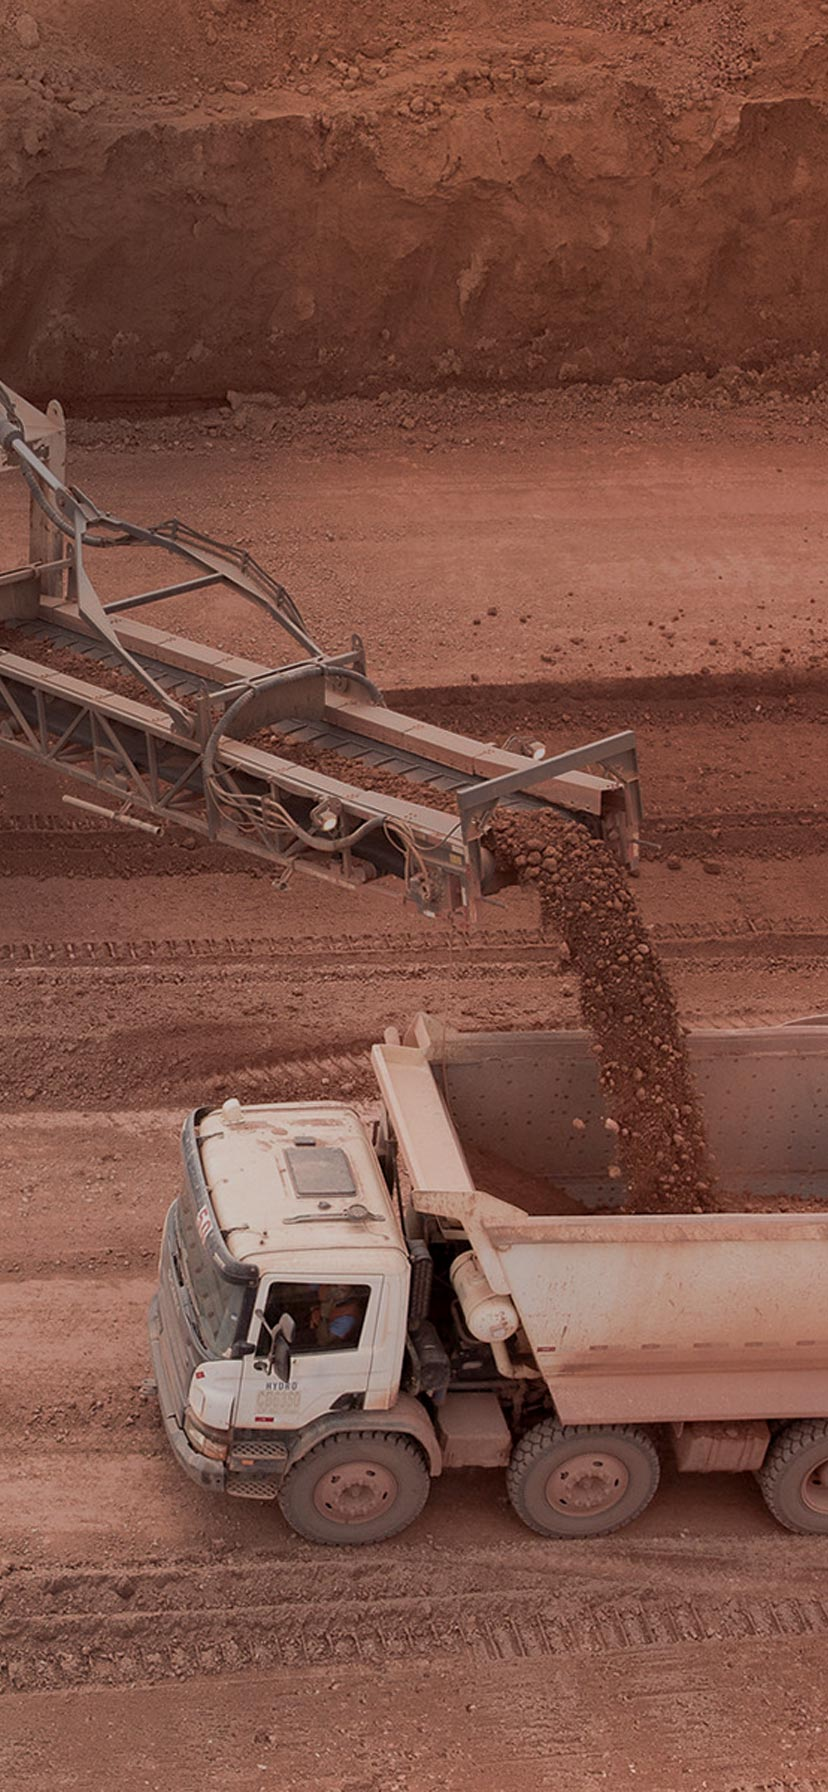 loading bauxite on truck